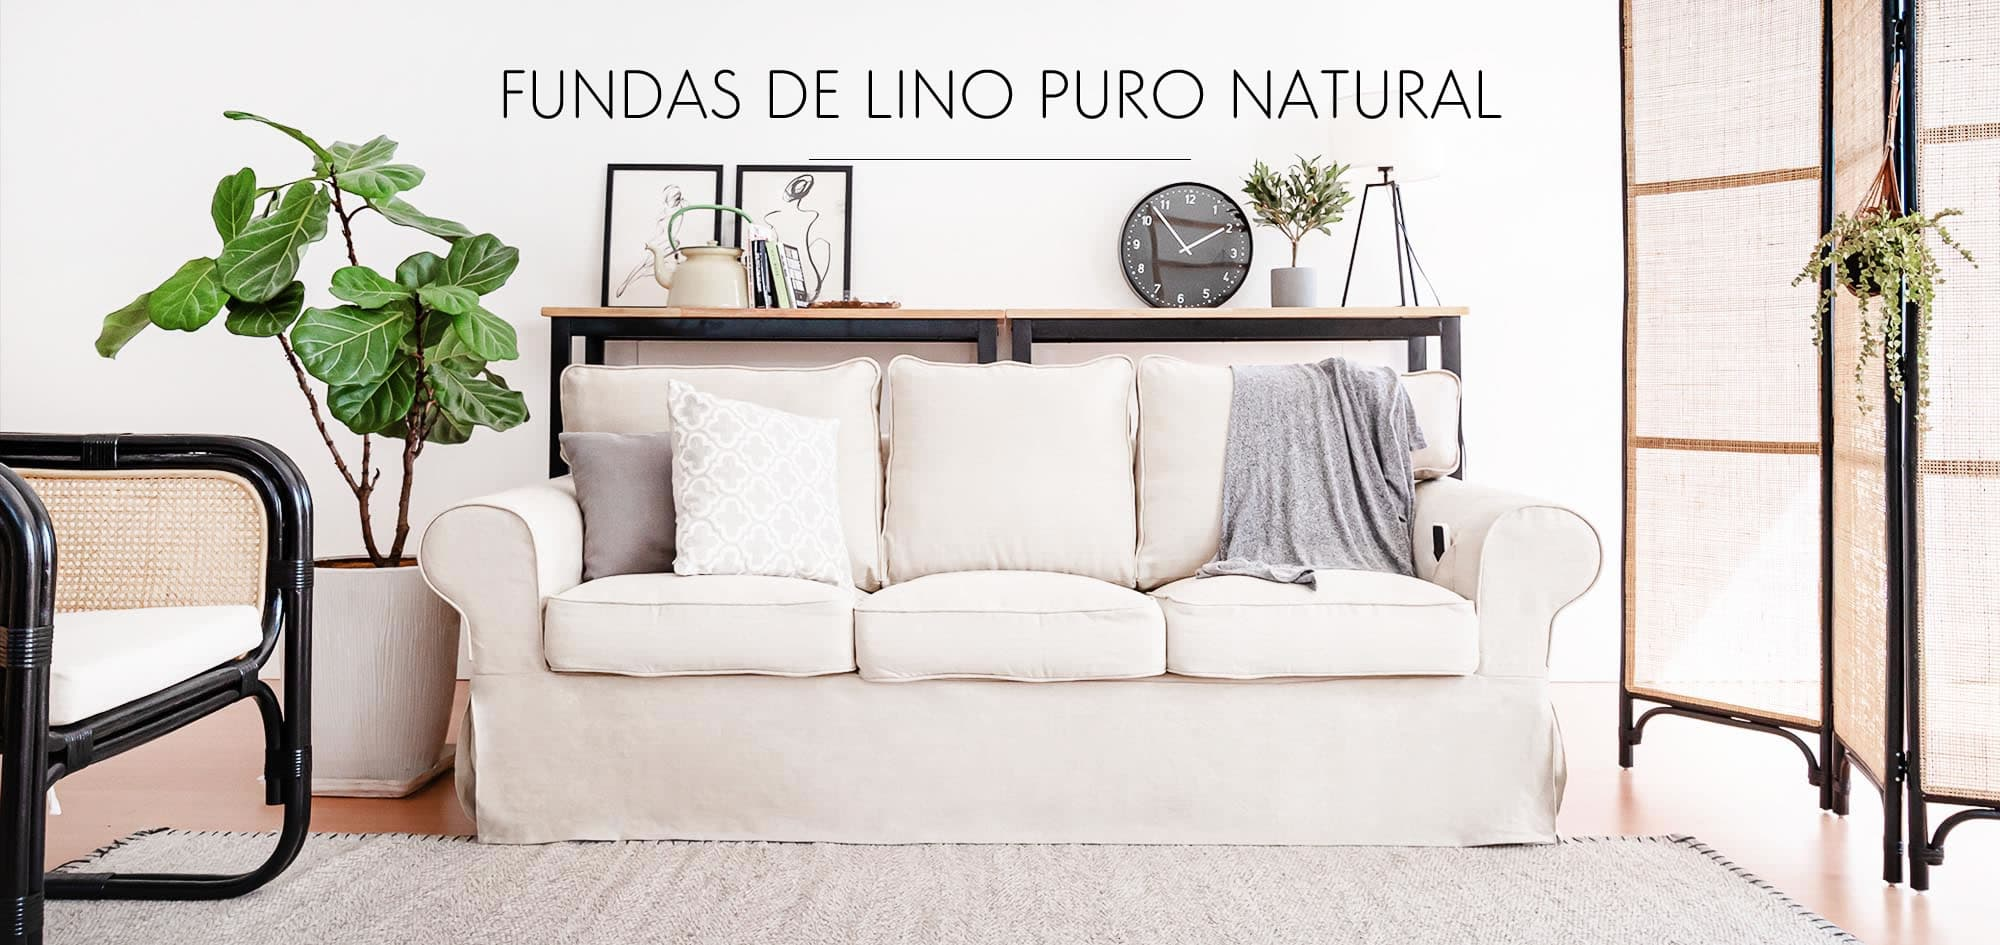 Fundas de tela de lino natural